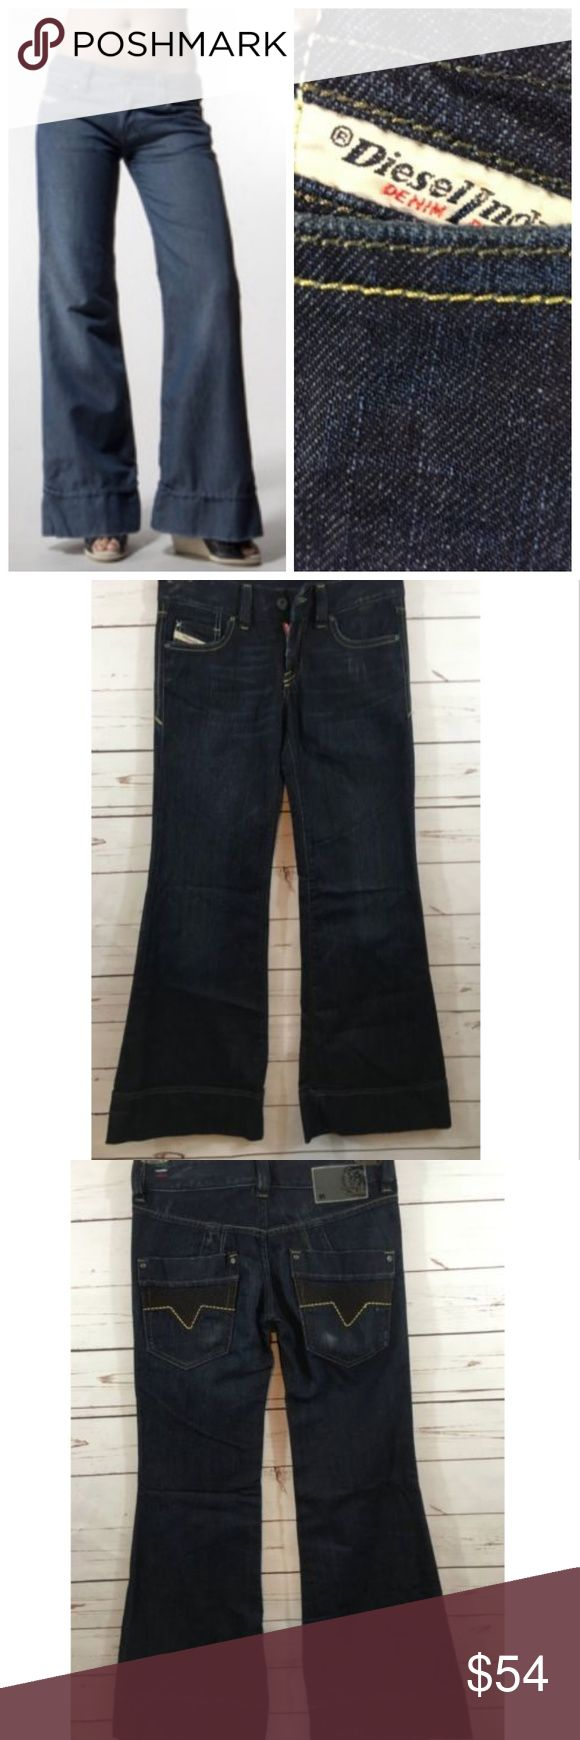 "Diesel Pacee 008BM Dark Wash Jeans 25x30 NWOT $189 Diesel Womens Jeans Pacee 008BM 25x30 NWOT $189 -Dark Wash -Bootcut -Low Rise -4 Pockets -Belt Loops -Leather Diesel Logo on back Size: 25x30 Inseam: 30""  Rise: 8""  Waist: 14.5"" flat lay from side to side Leg Opening Width: 12"" flat lay from seam to seam  Color: Dark Wash Material: 75% Cotton 25% Poly Care: Machine Wash Cold   New Diesel Pacee Jeans. Great fit and classic style! Please see measurements and compare to a home garment for…"